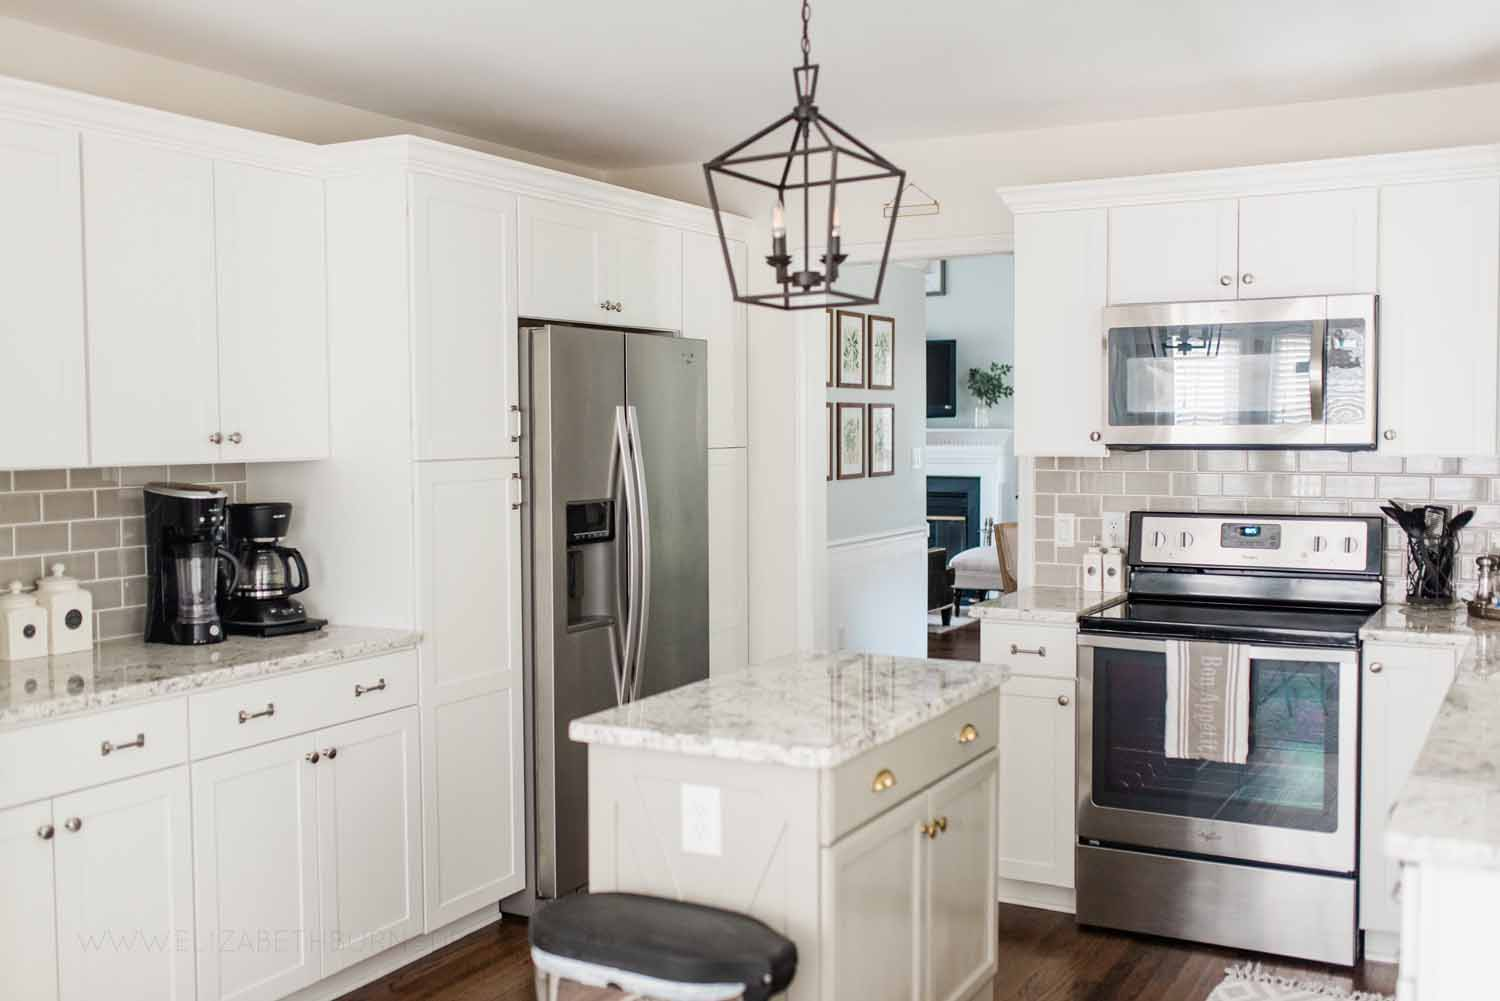 Elizabeth Burns Design Raleigh Interior Designer 1990s house remodel before and after Benjamin Moore Classic Gray 1548 Arcadia White Shaker Cabinets Gray Subway Tile Backsplash (5).jpg